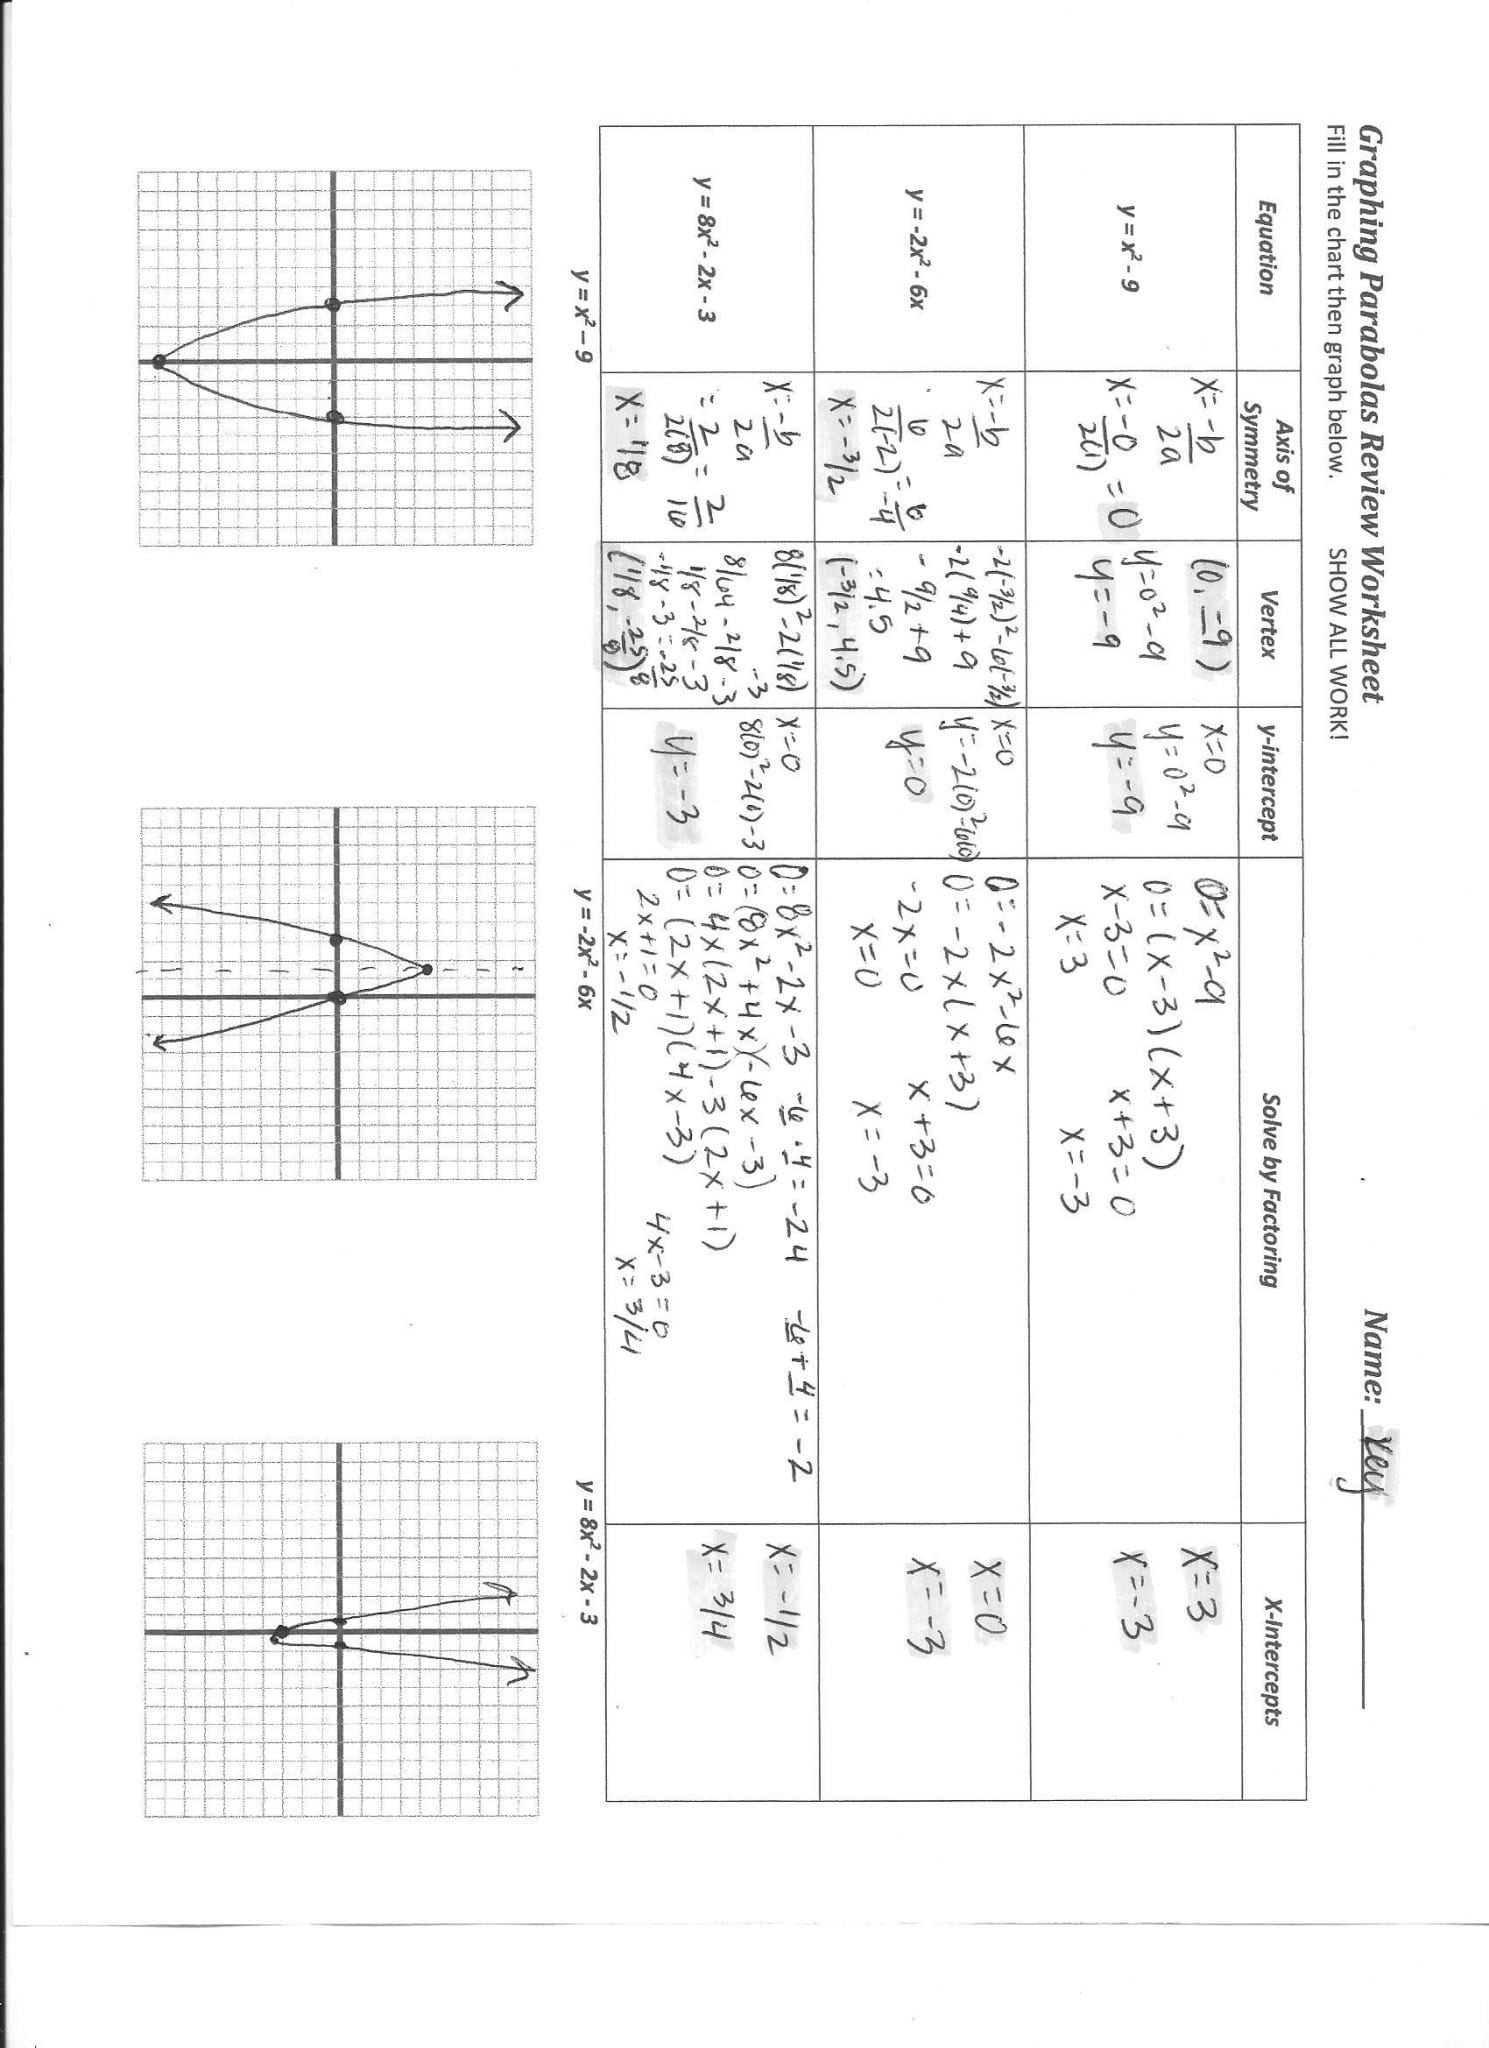 Graphing Quadratic Functions Worksheet Answer Key